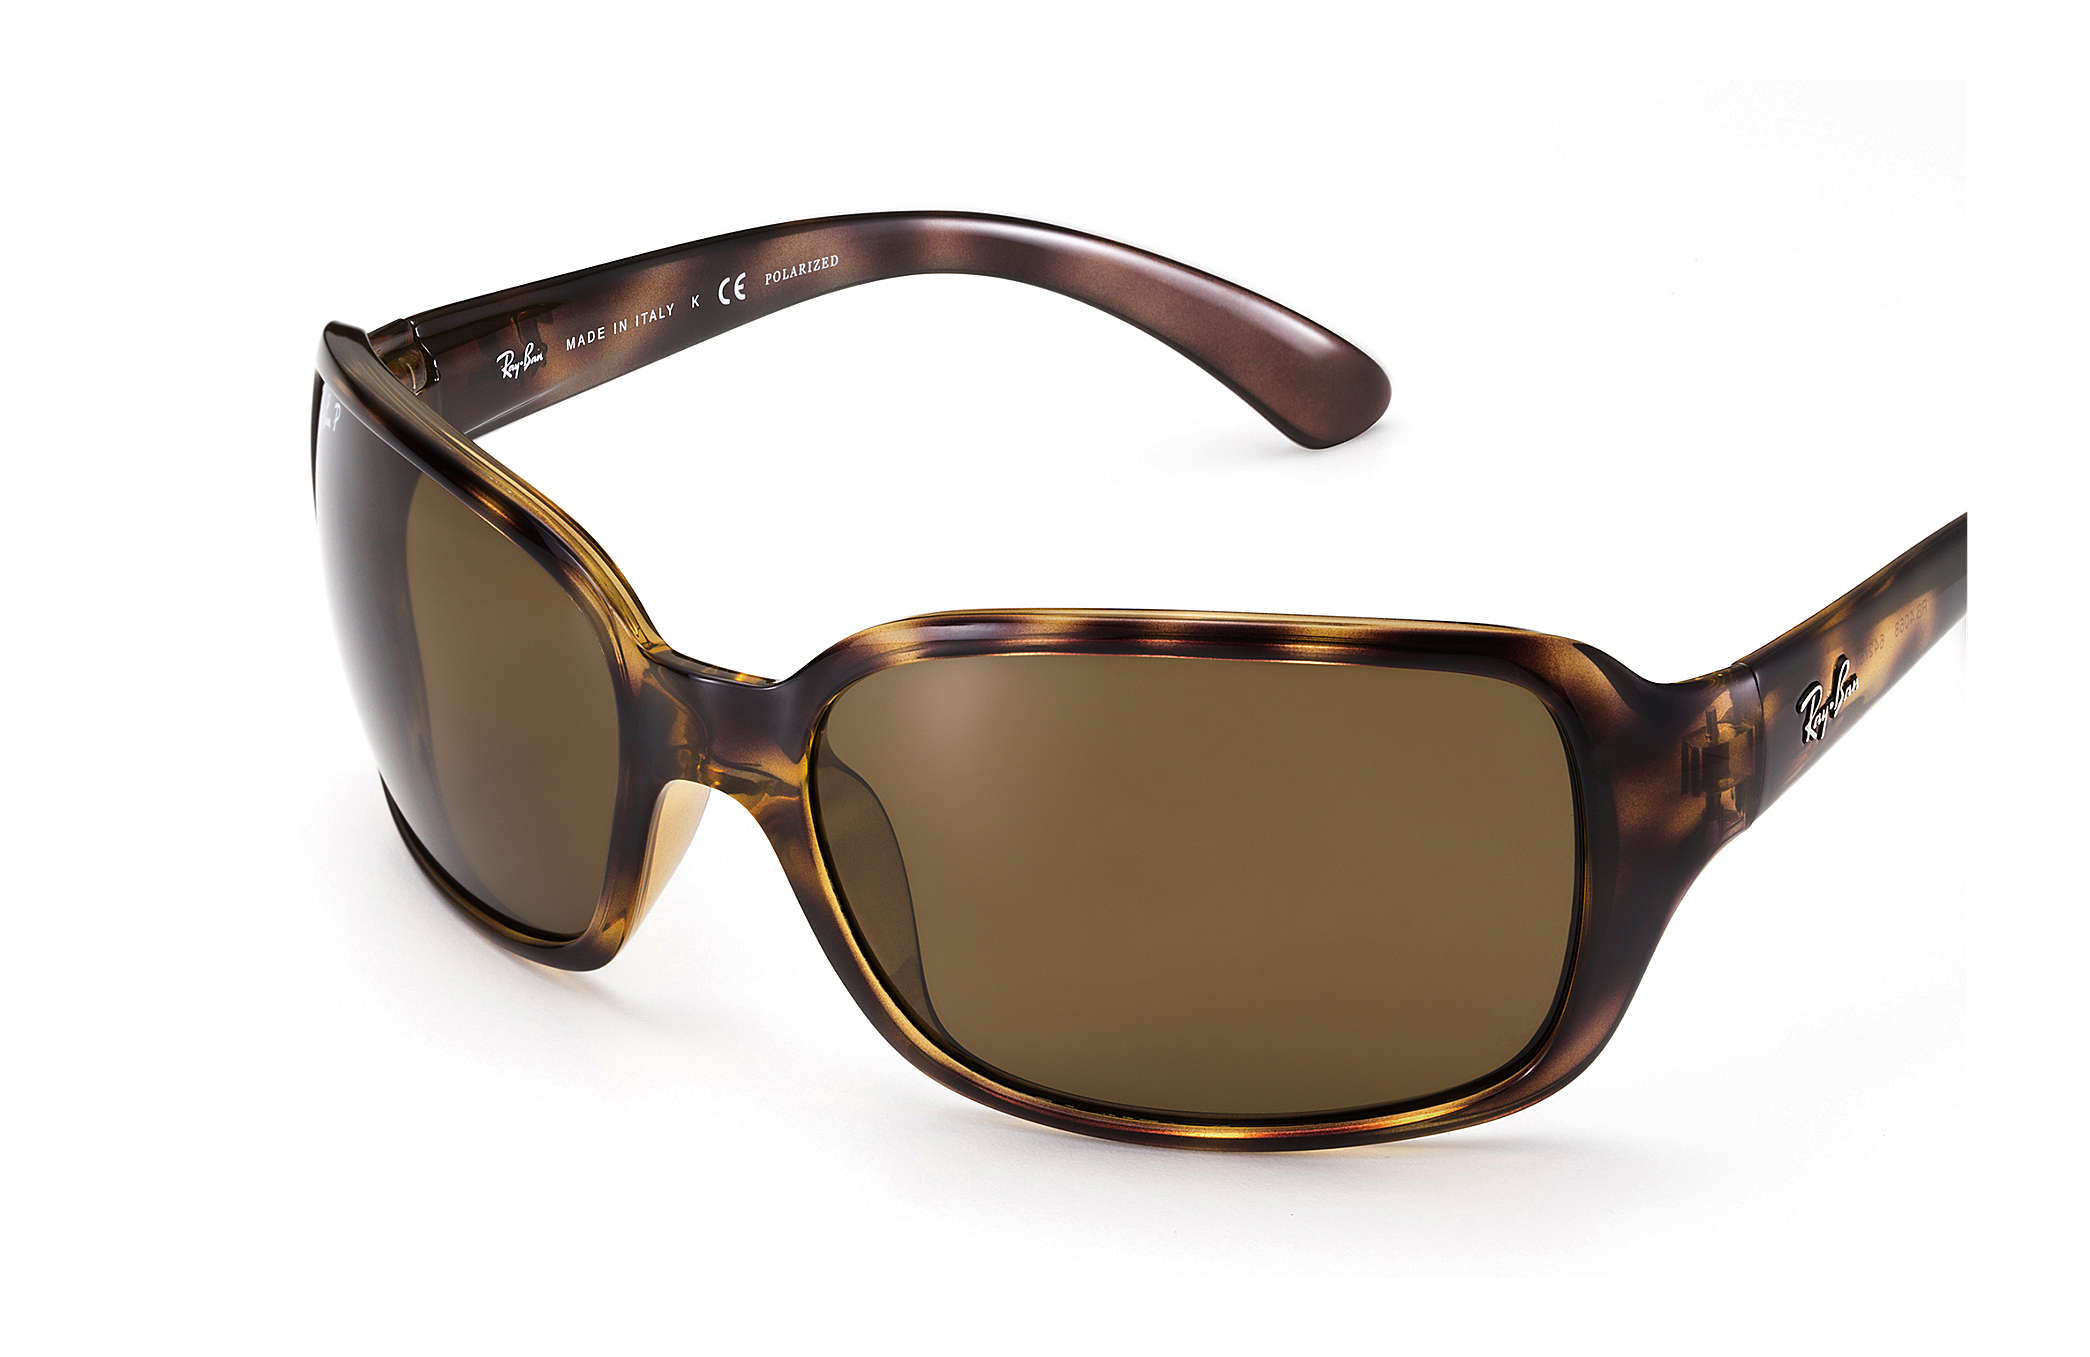 Ray-Ban RB4068 Tortoise - Nylon - Brown Polarized Lenses ... 9f4b38ad81c7